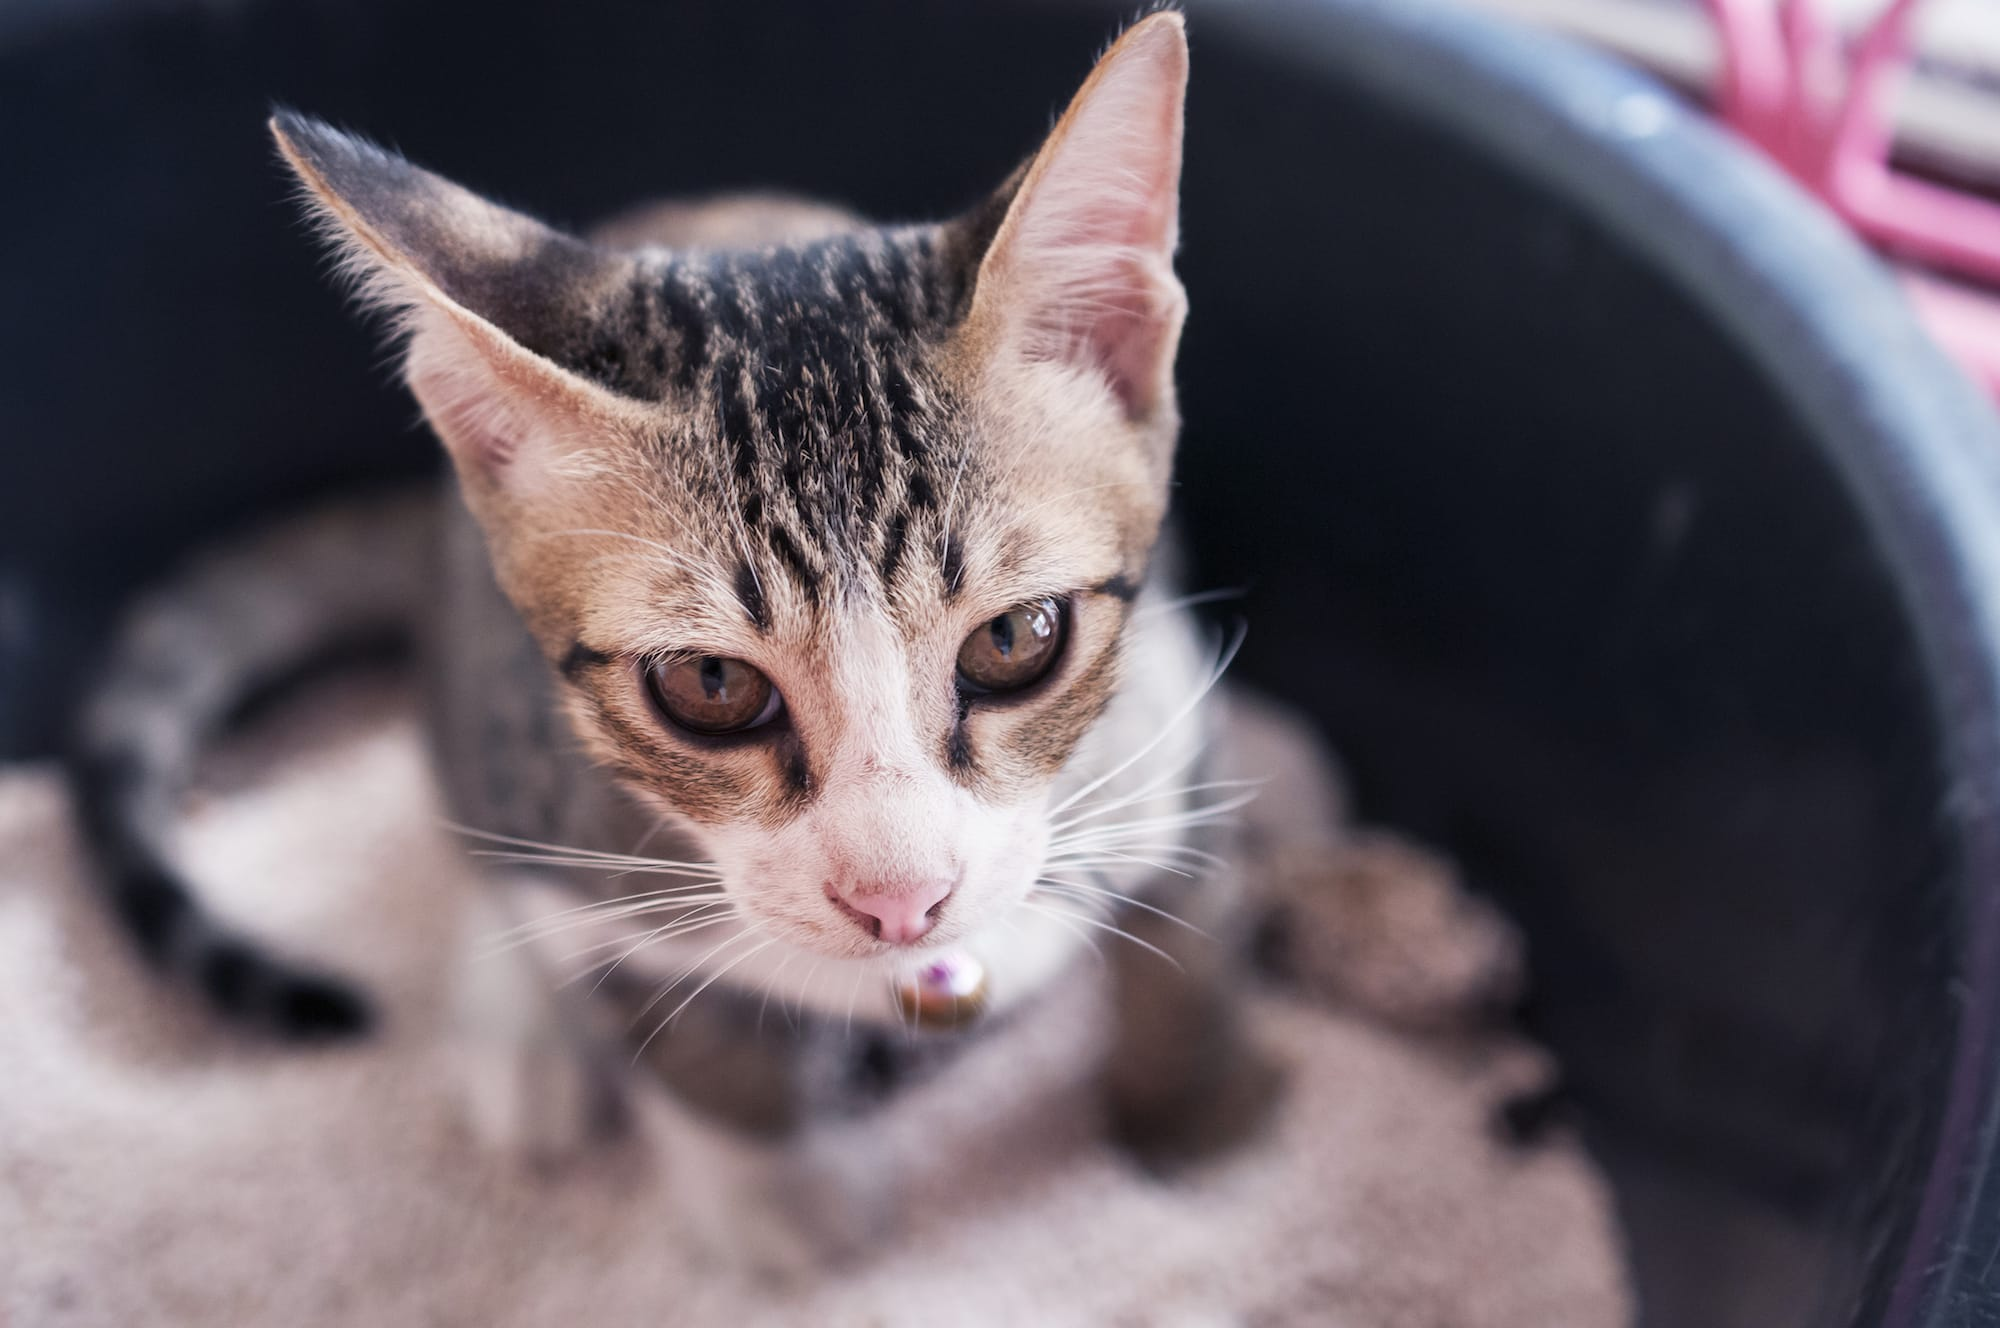 Cat Urine Has An Incredibly Potent Smell Most Pet Parents Have Had The Experience Of Getting A Whiff While Cleaning Litter Box